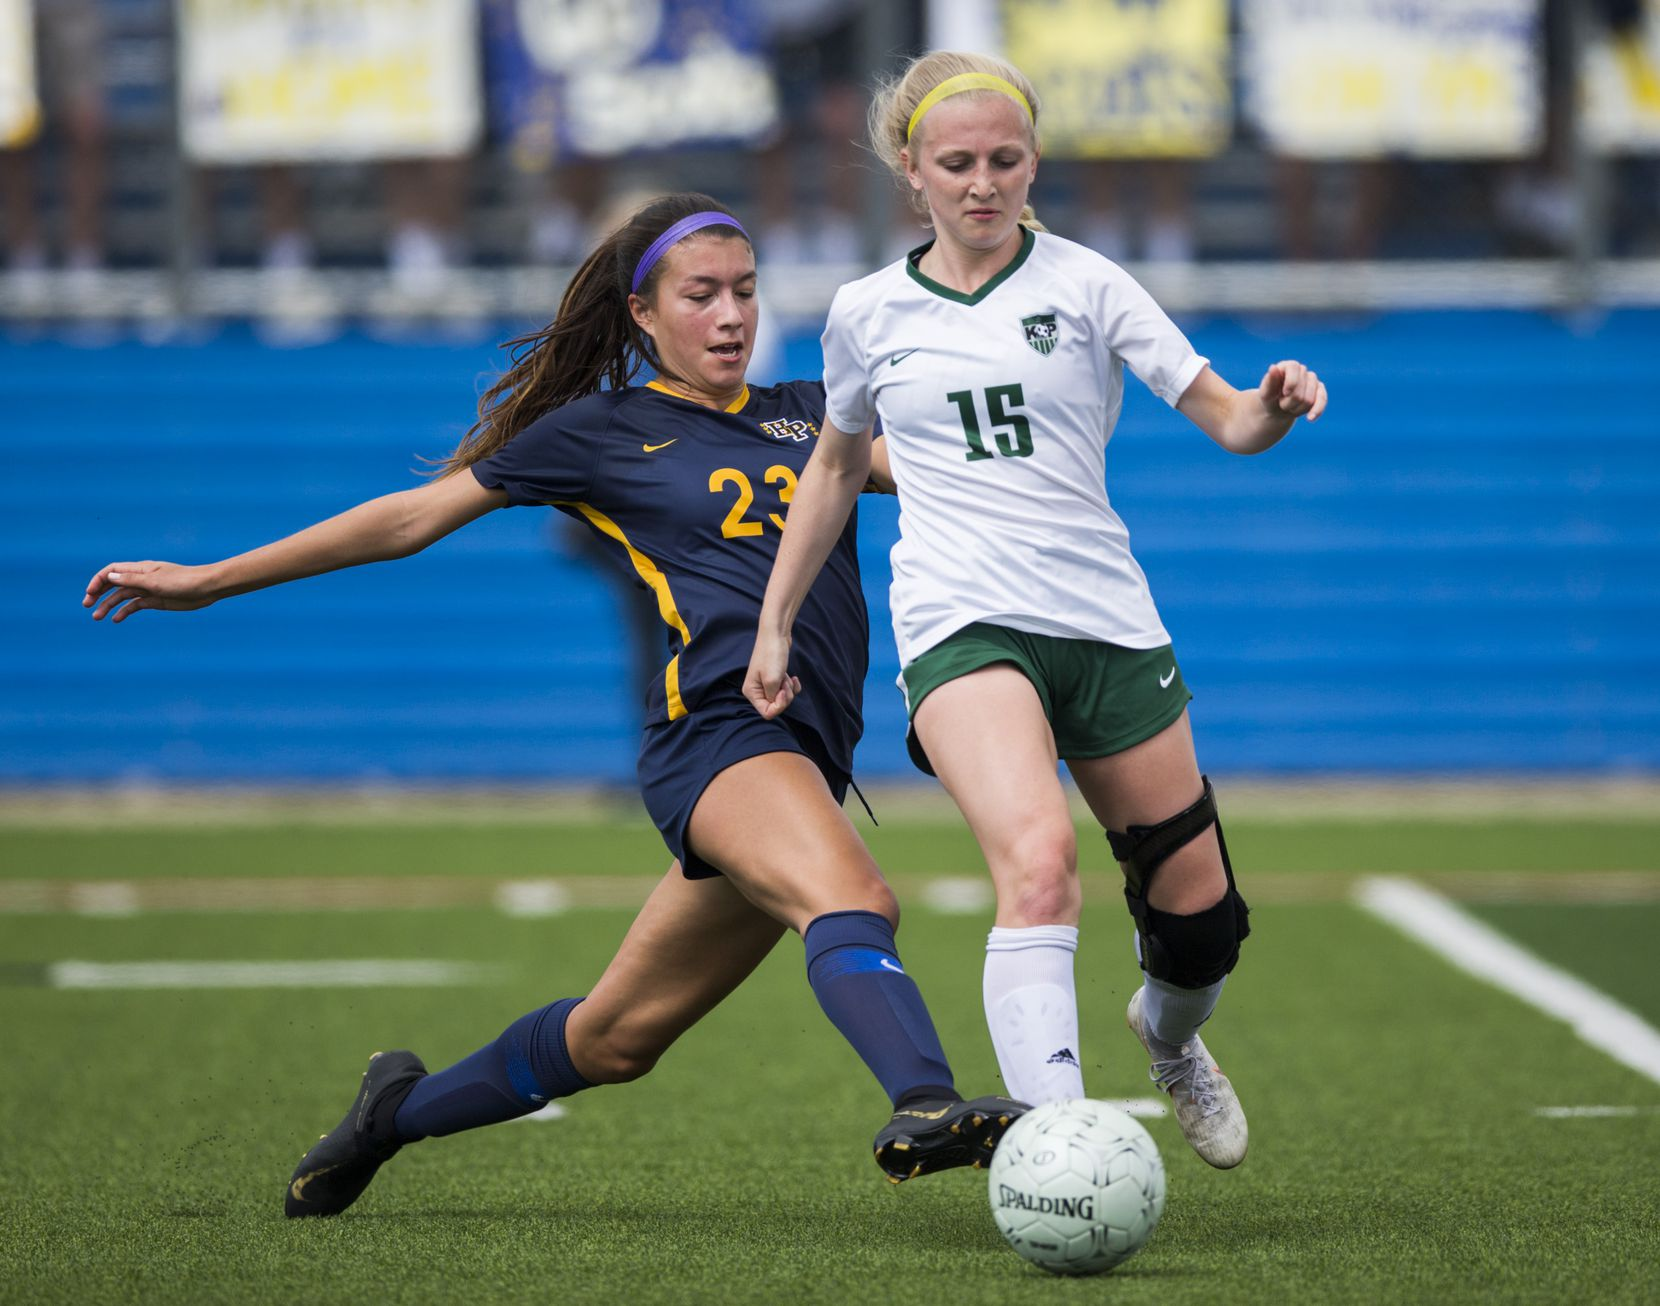 Highland Park forward Maja Davison (23) tries to get the ball from Humble Kingwood Park midfielder Brooke Baldon (15) during the second half of a UIL conference 5A girls state semifinal soccer game between Highland Park High School and Humble Kingwood Park High School on Thursday, April 18, 2019 at Birkelbach Field in Georgetown, Texas. (Ashley Landis/The Dallas Morning News)